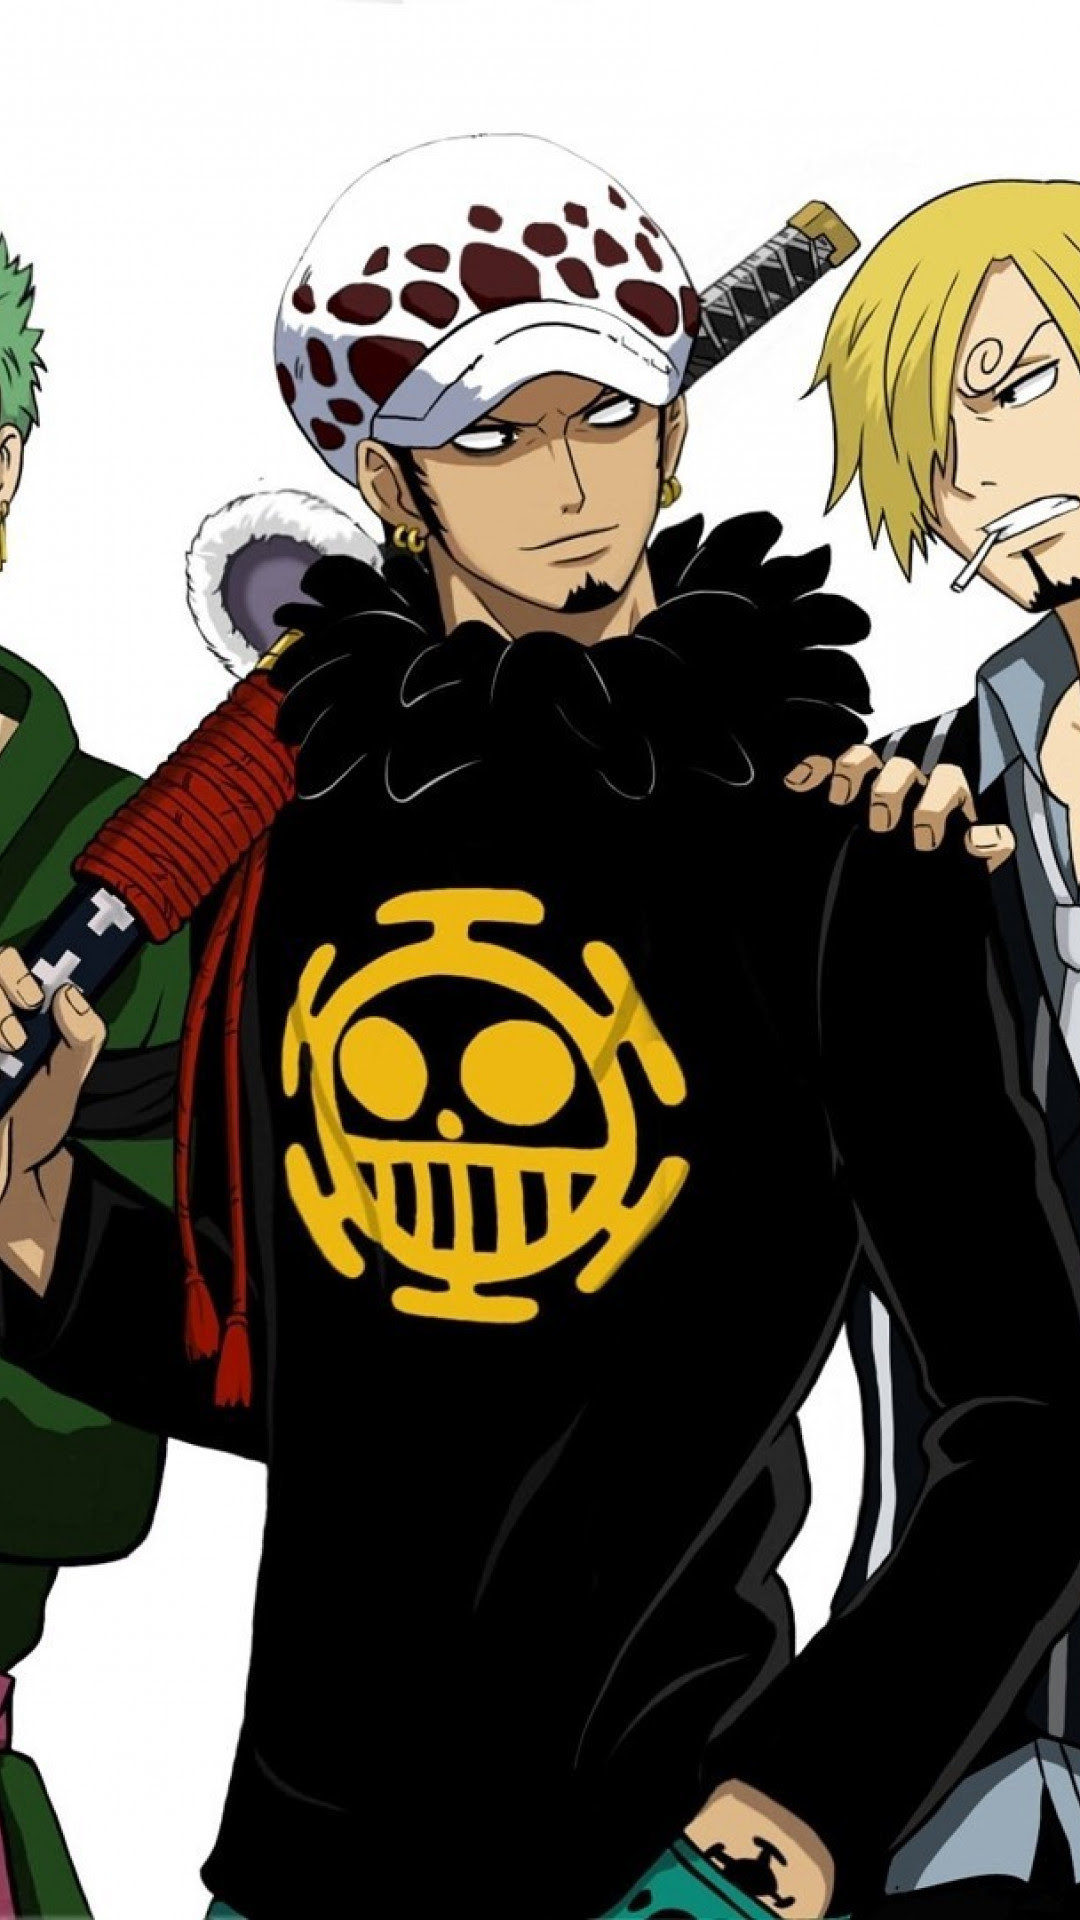 Tons of awesome one piece zoro wallpapers to download for free Wallpapers Hd One Piece Zoro